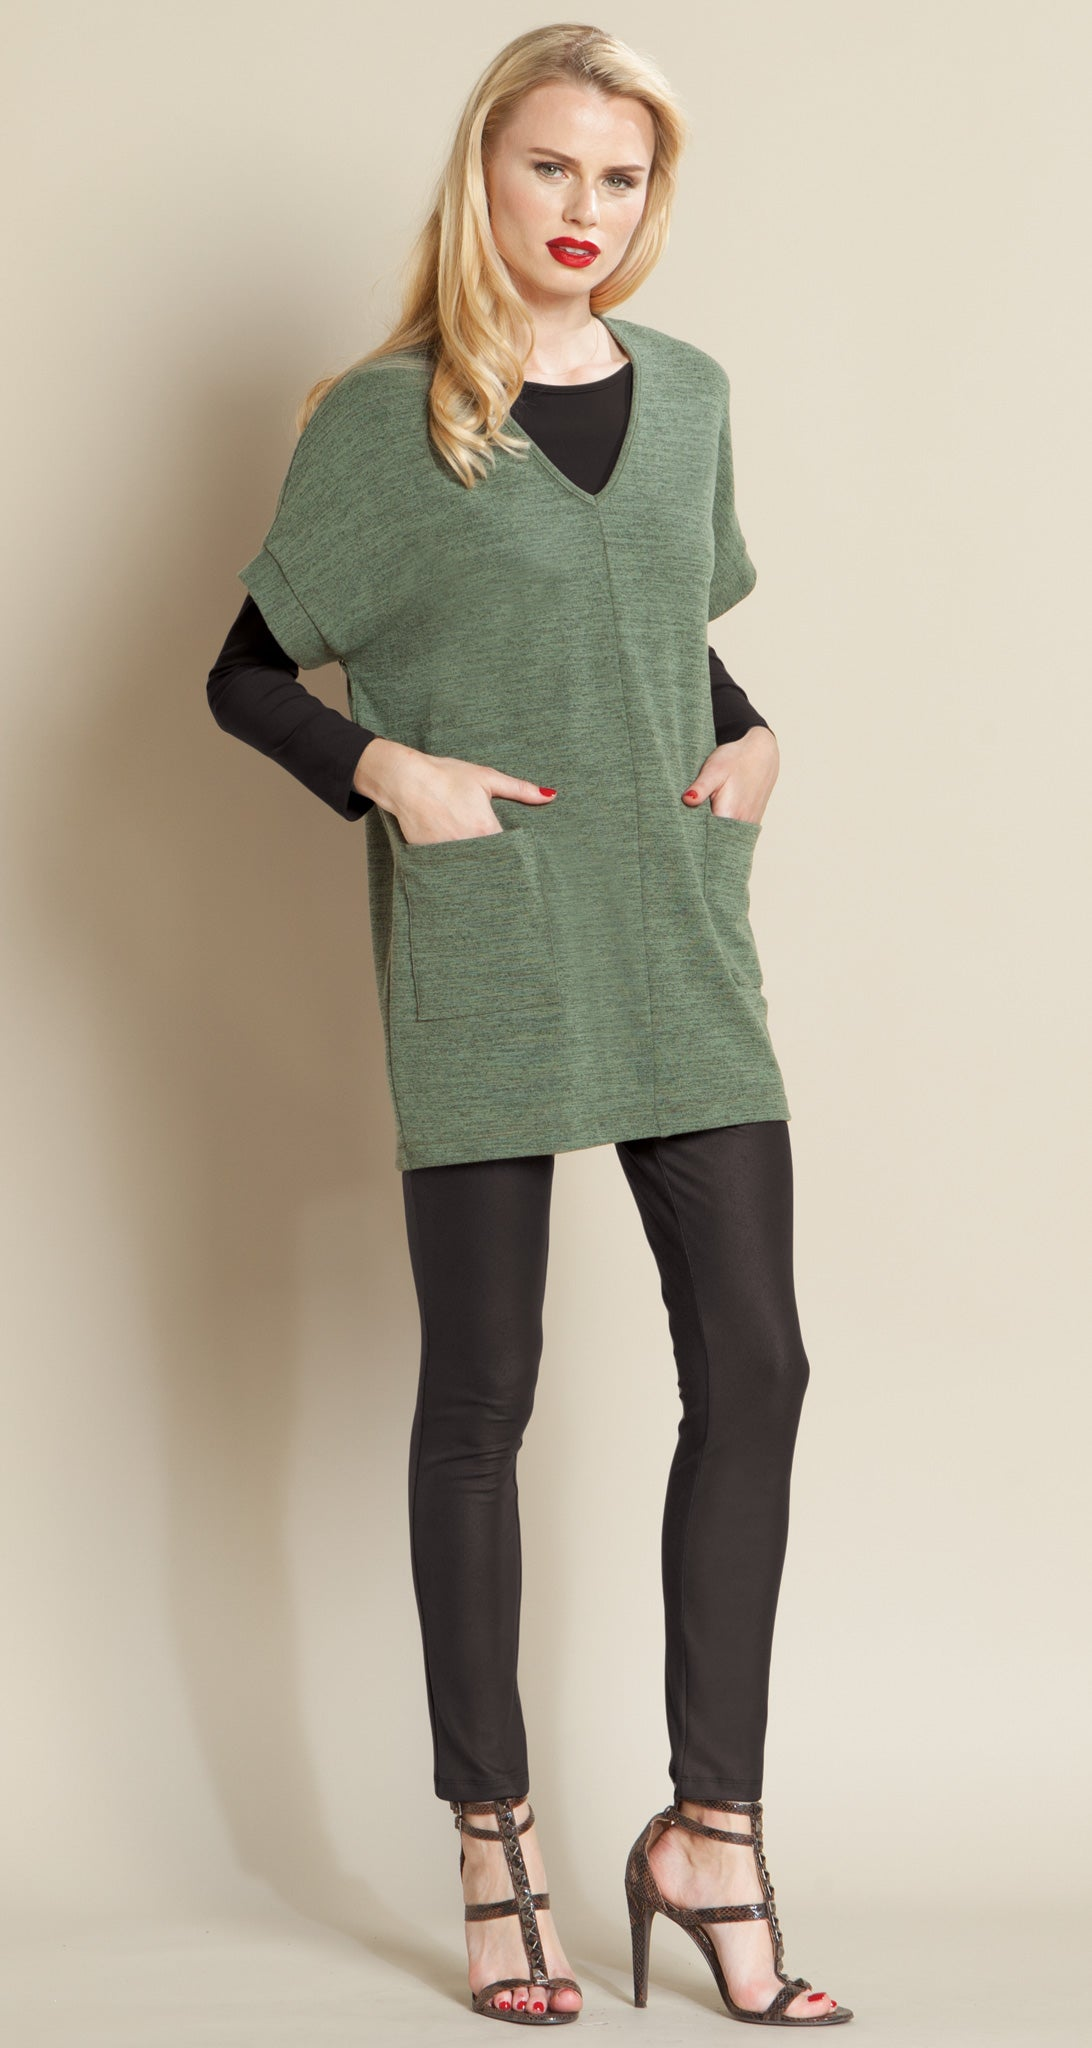 V Neck Pocket Sweater - Olive - Final Sale! - Clara Sunwoo